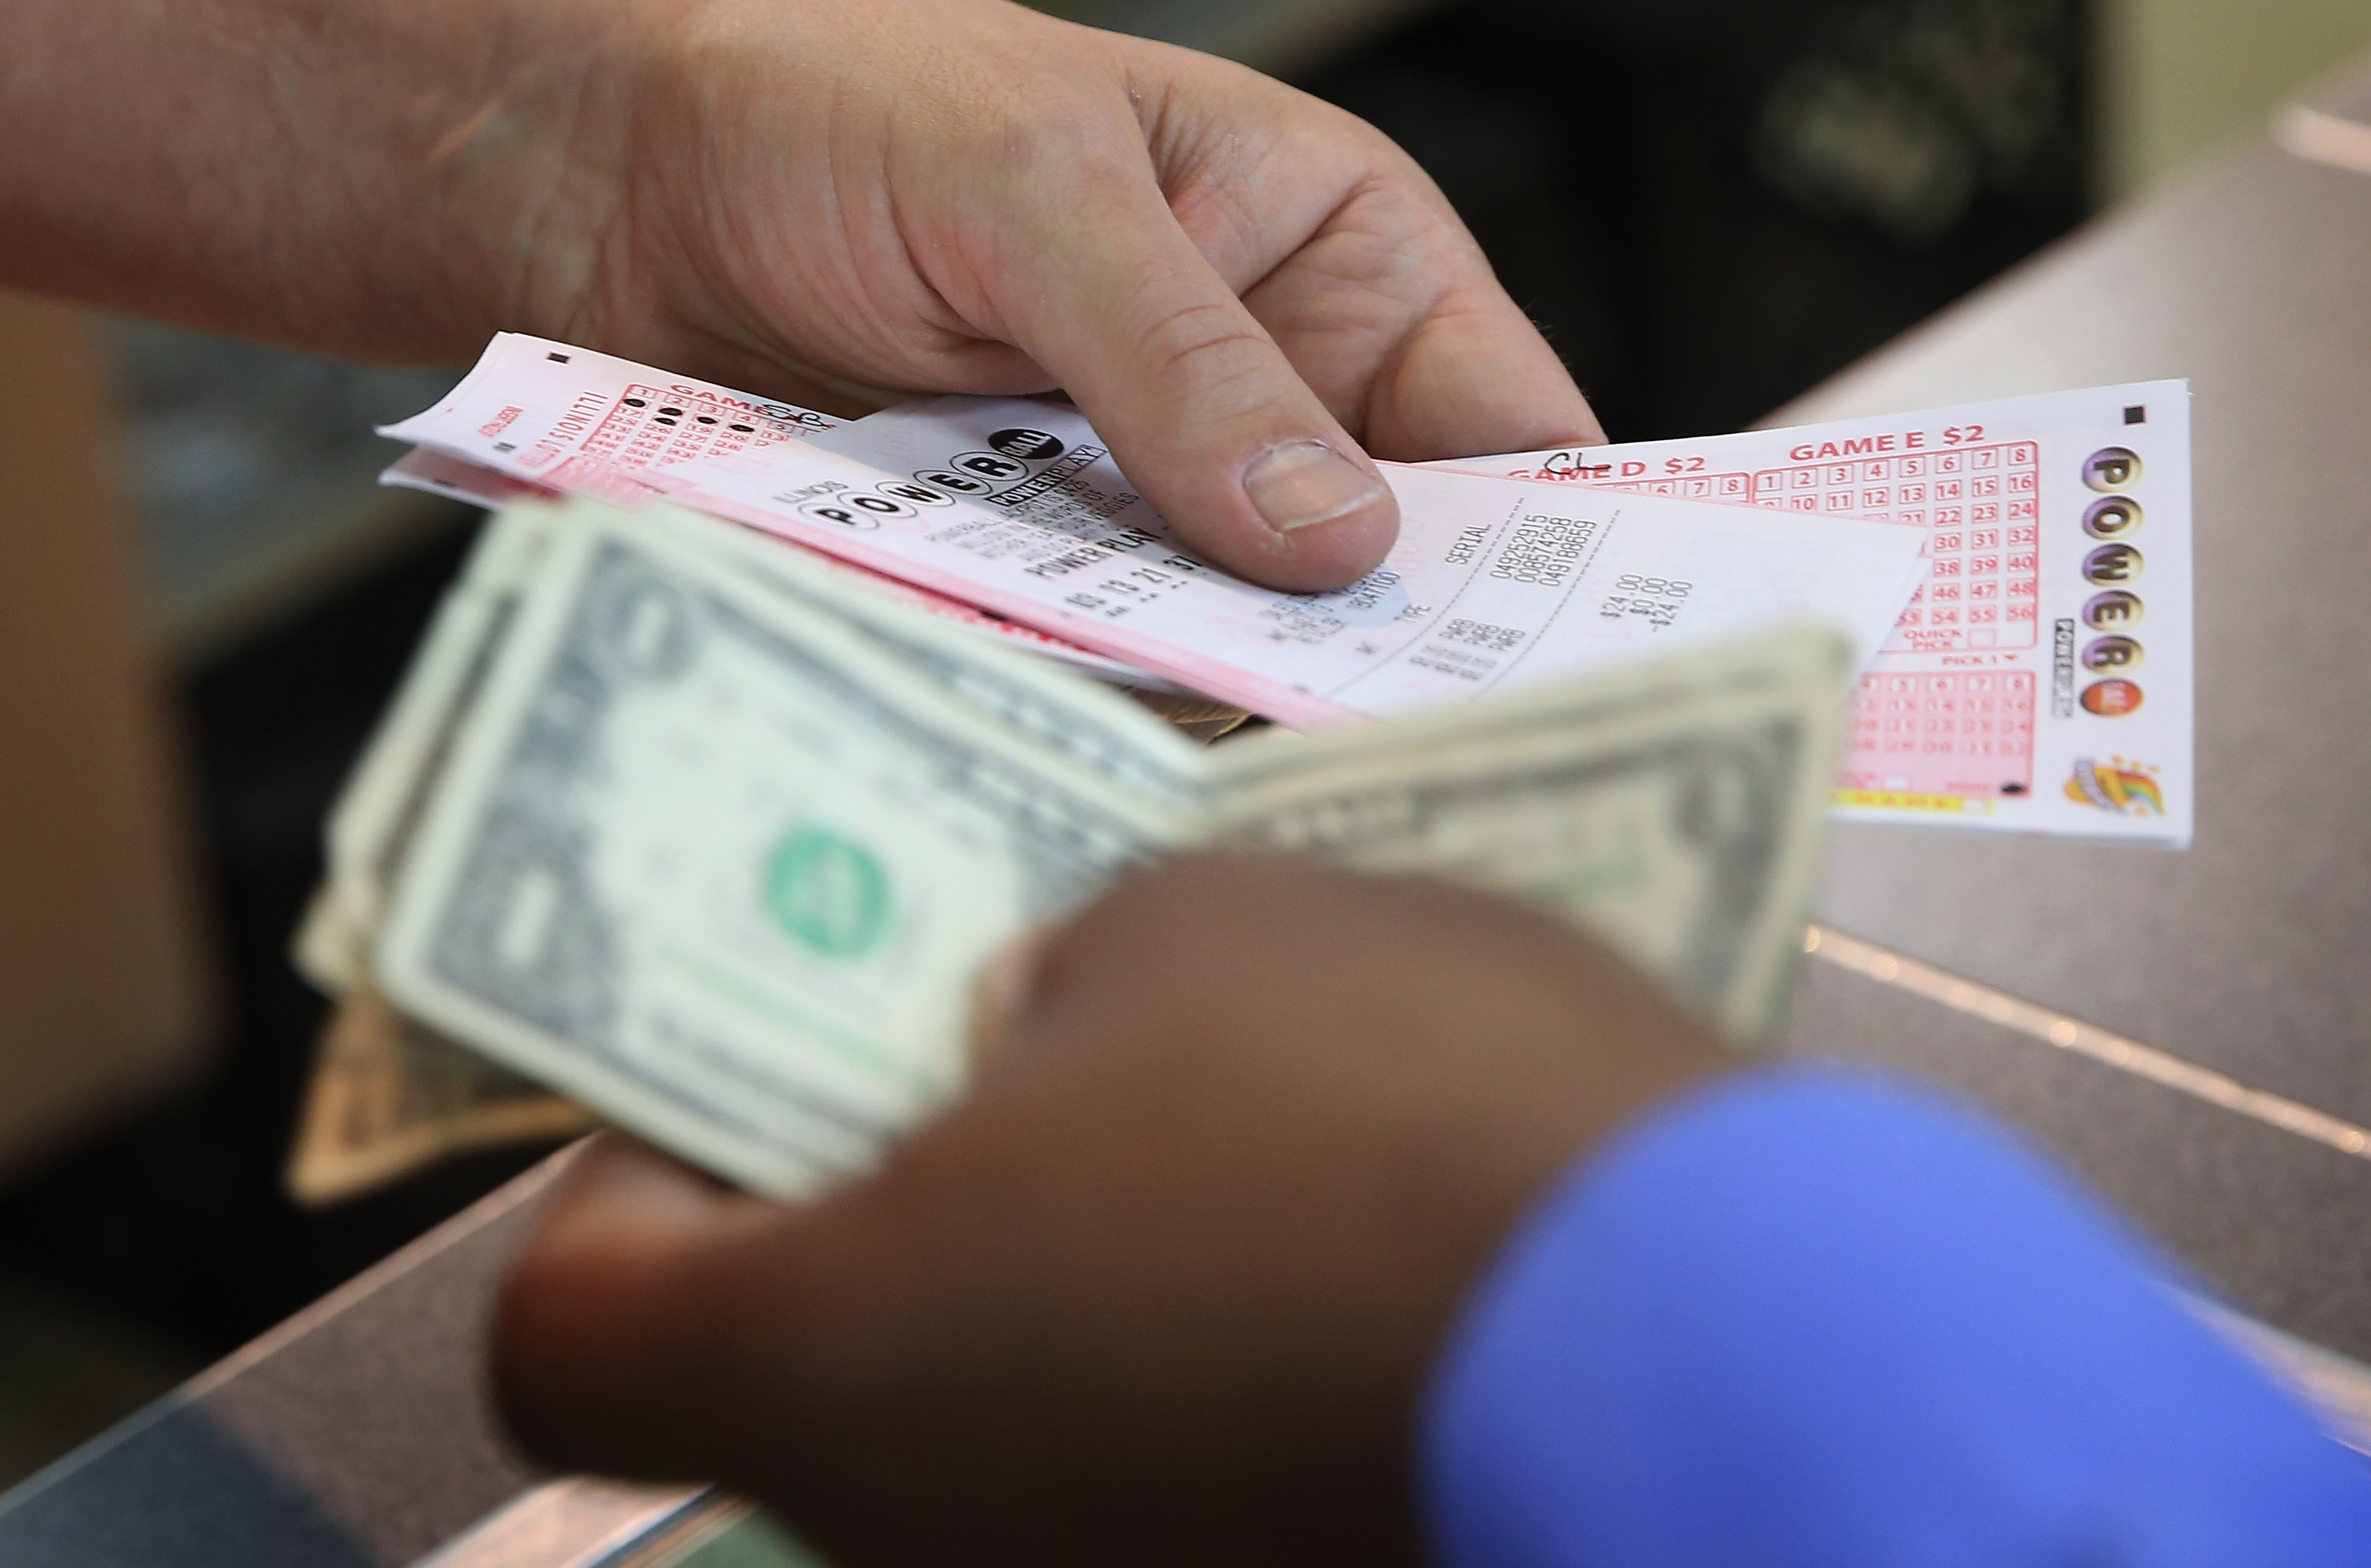 A customer purchases a Powerball lottery ticket on Aug. 7, 2013 in Chicago.